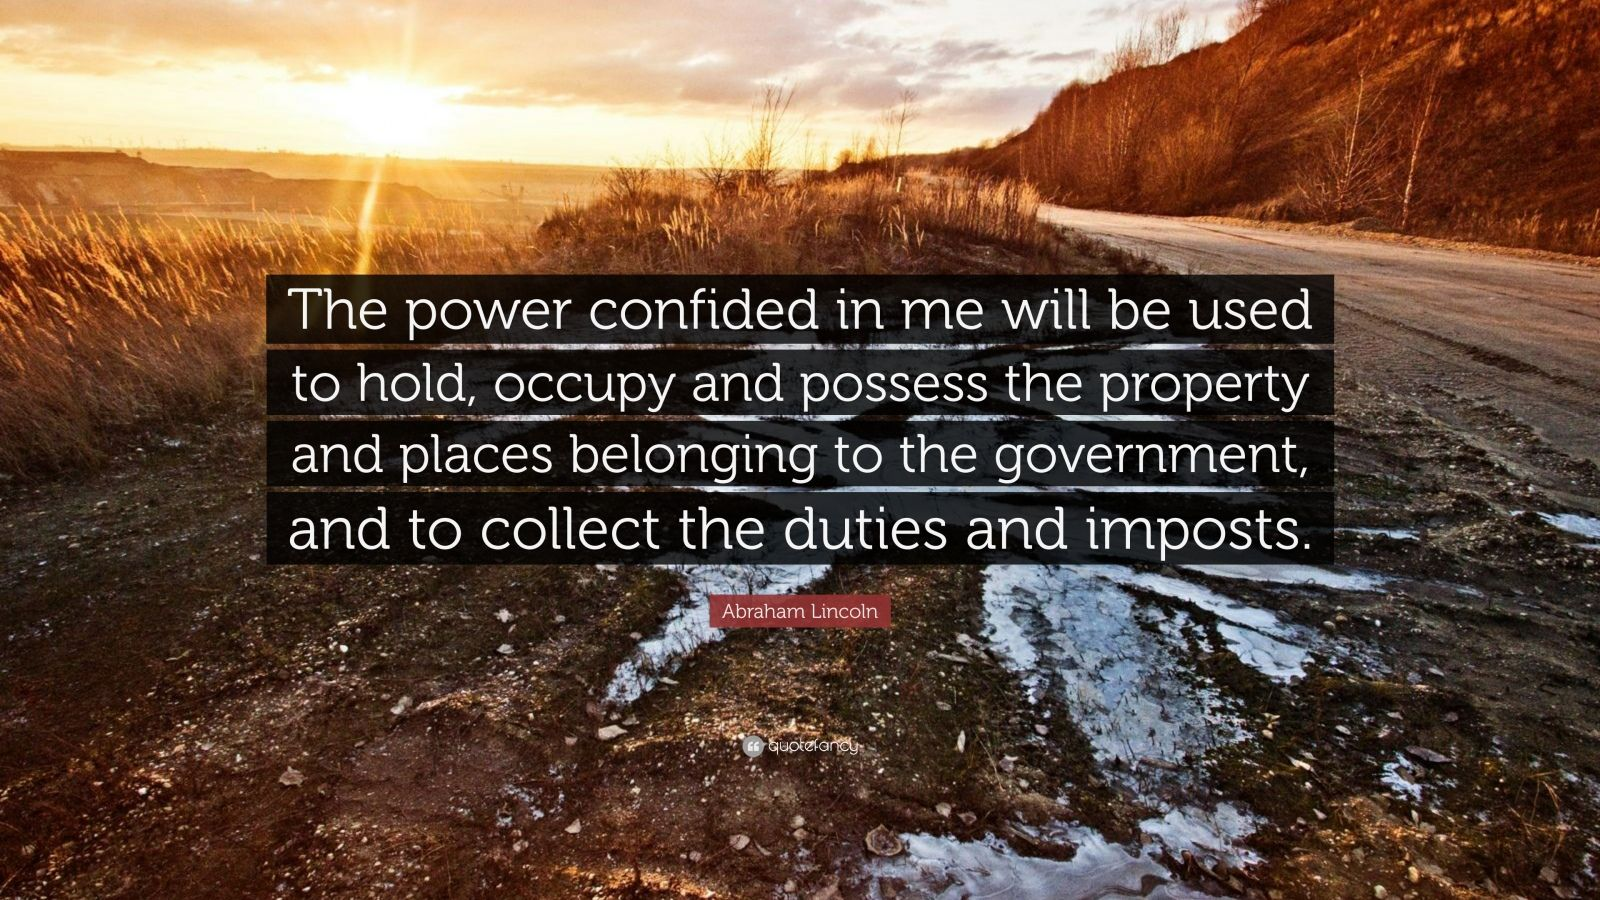 """Abraham Lincoln Quote: """"The power confided in me will be used to hold, occupy and possess the property and places belonging to the government, and to collect the duties and imposts."""""""